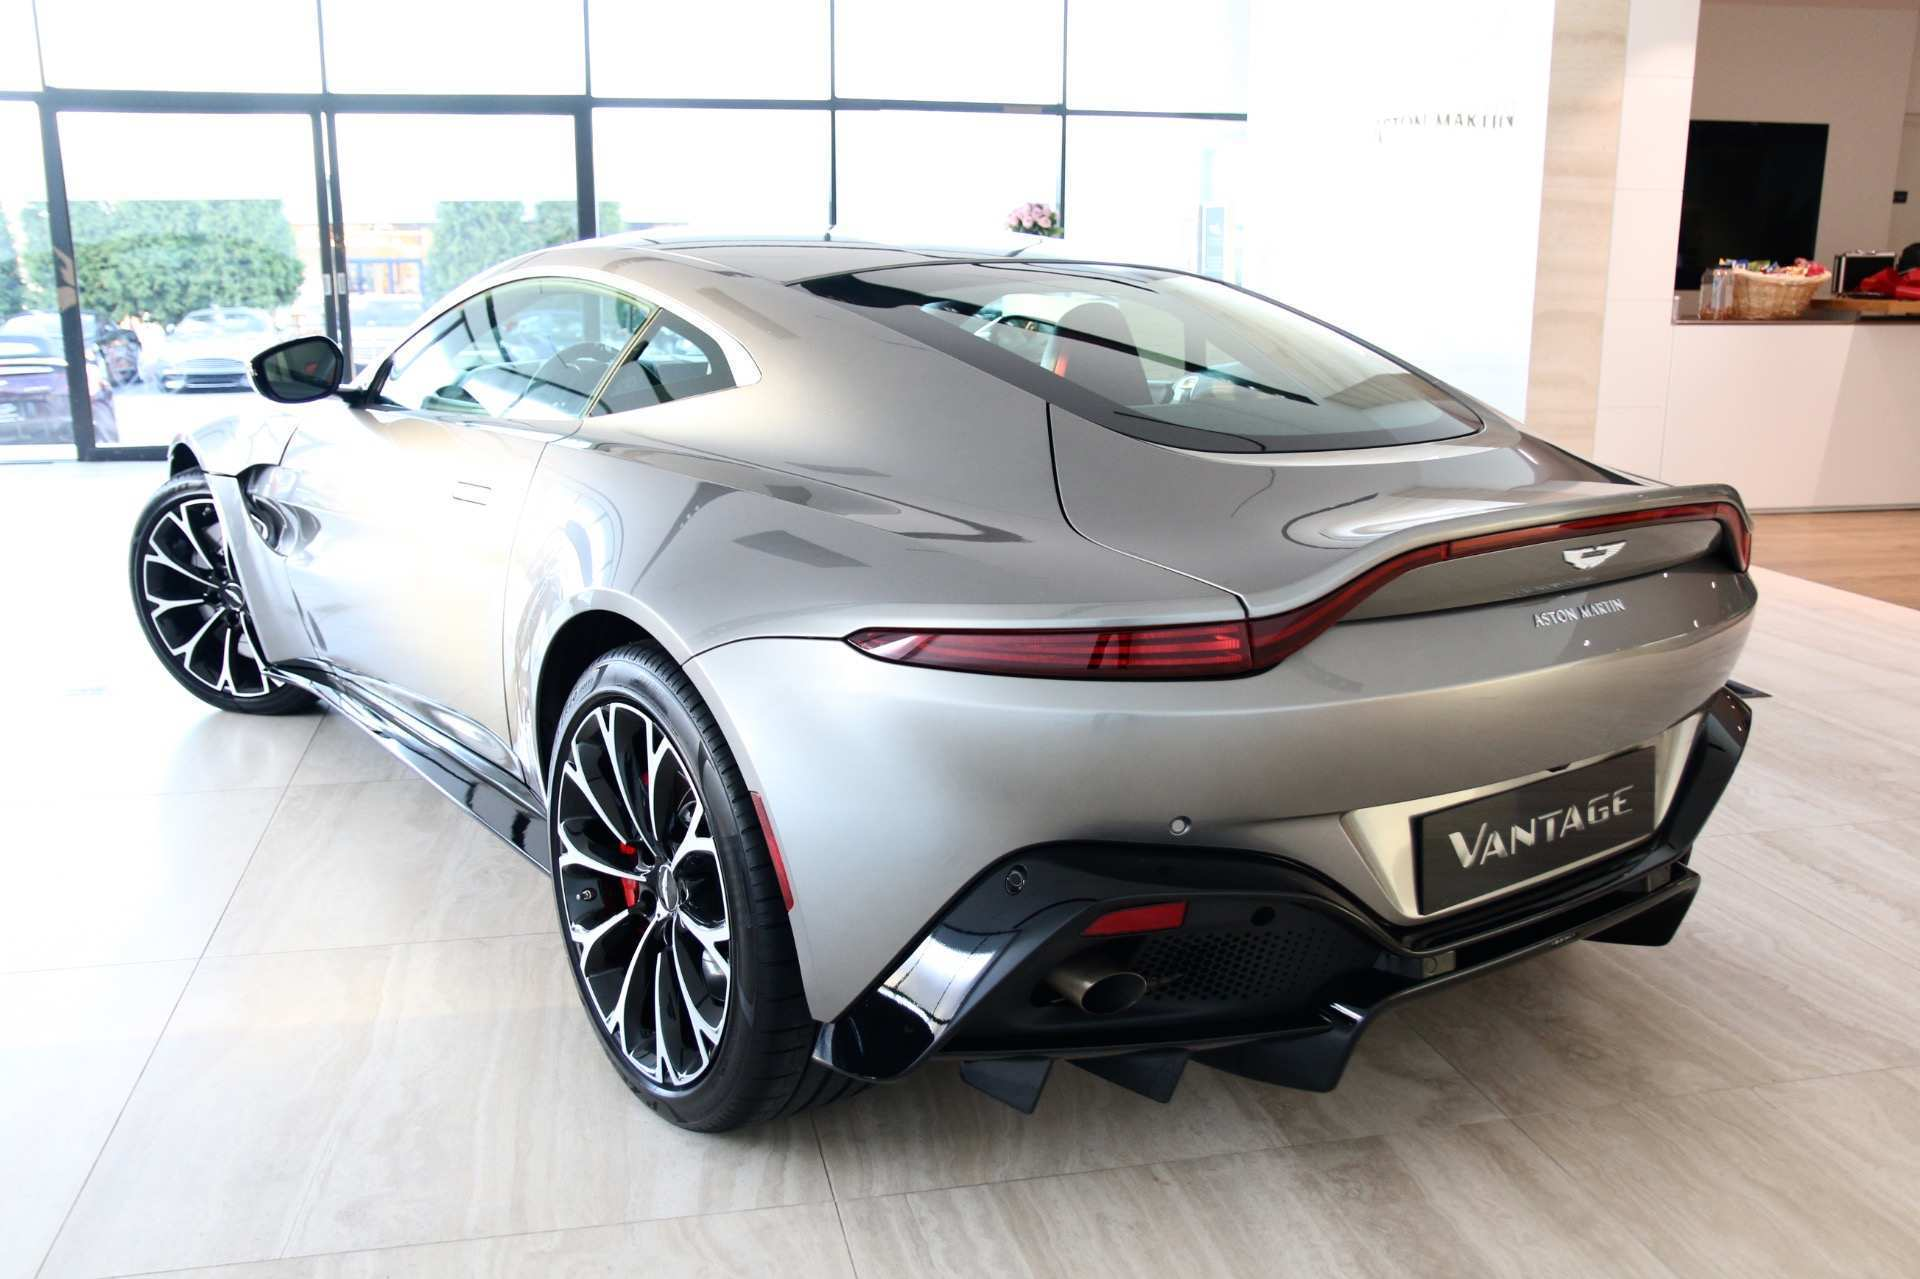 72 The 2019 Aston Martin Vantage Msrp Price and Review with 2019 Aston Martin Vantage Msrp